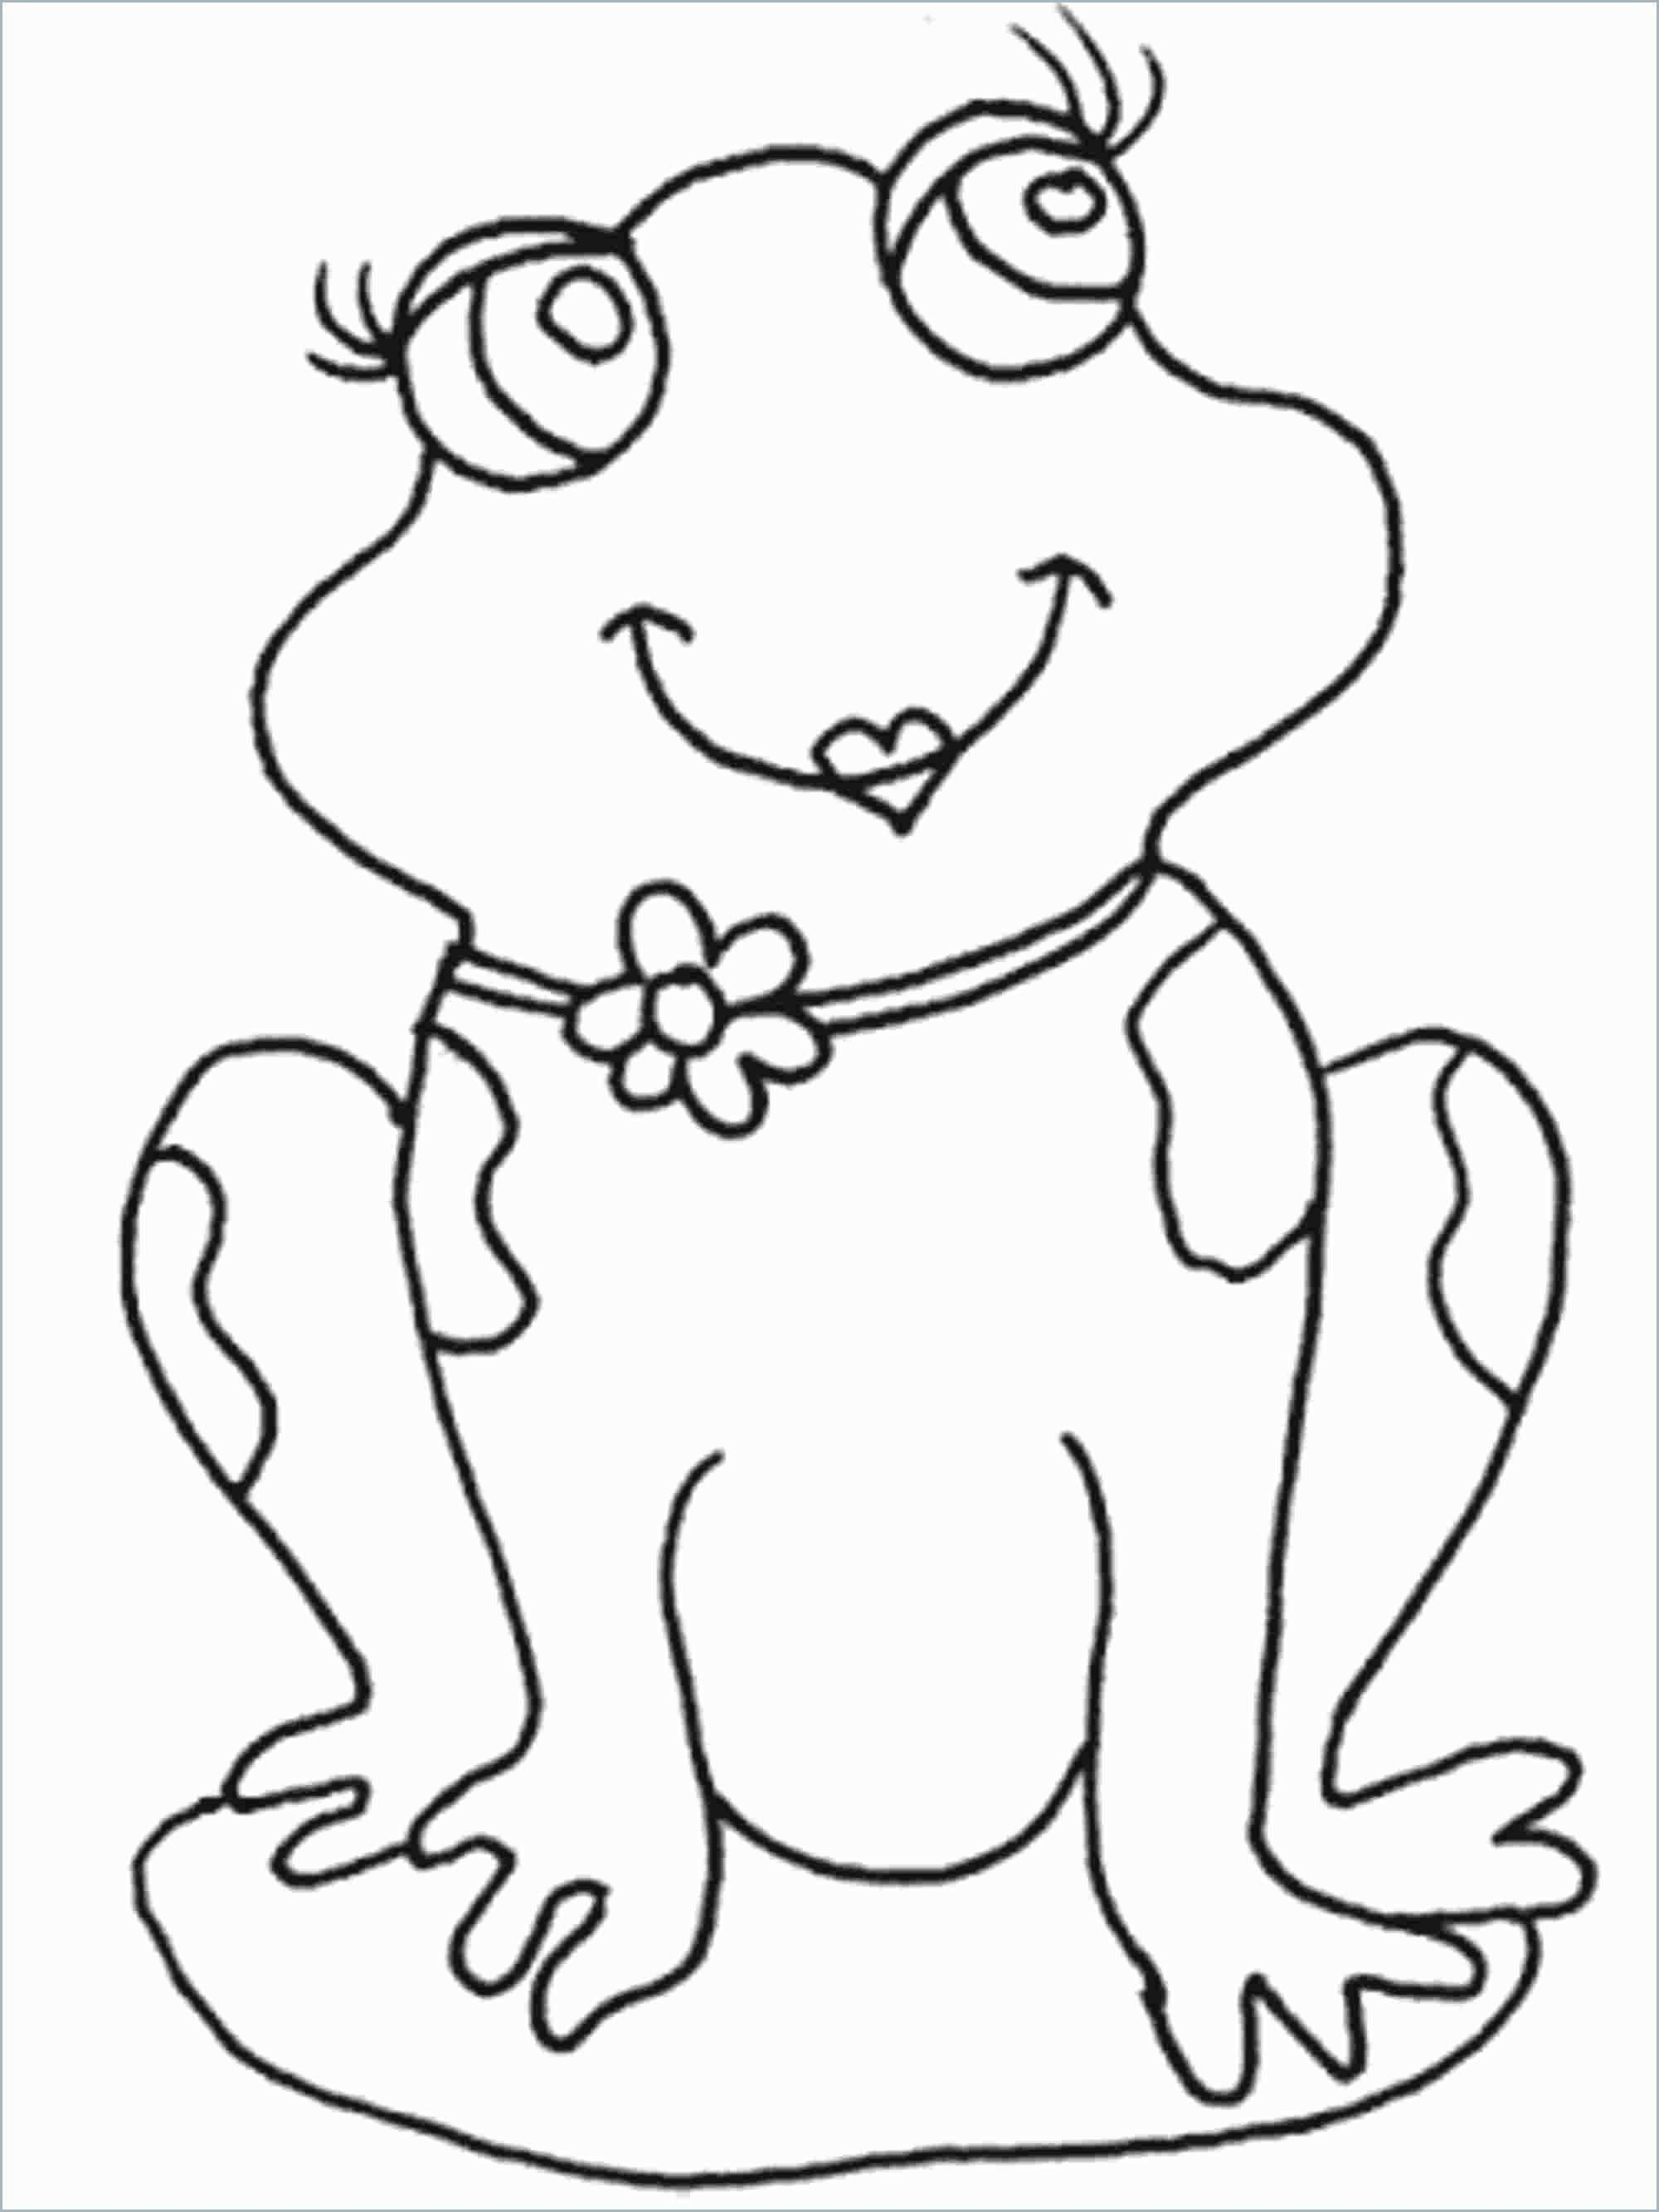 Rosh Hashanah Coloring Pages Inspirational Pug Coloring